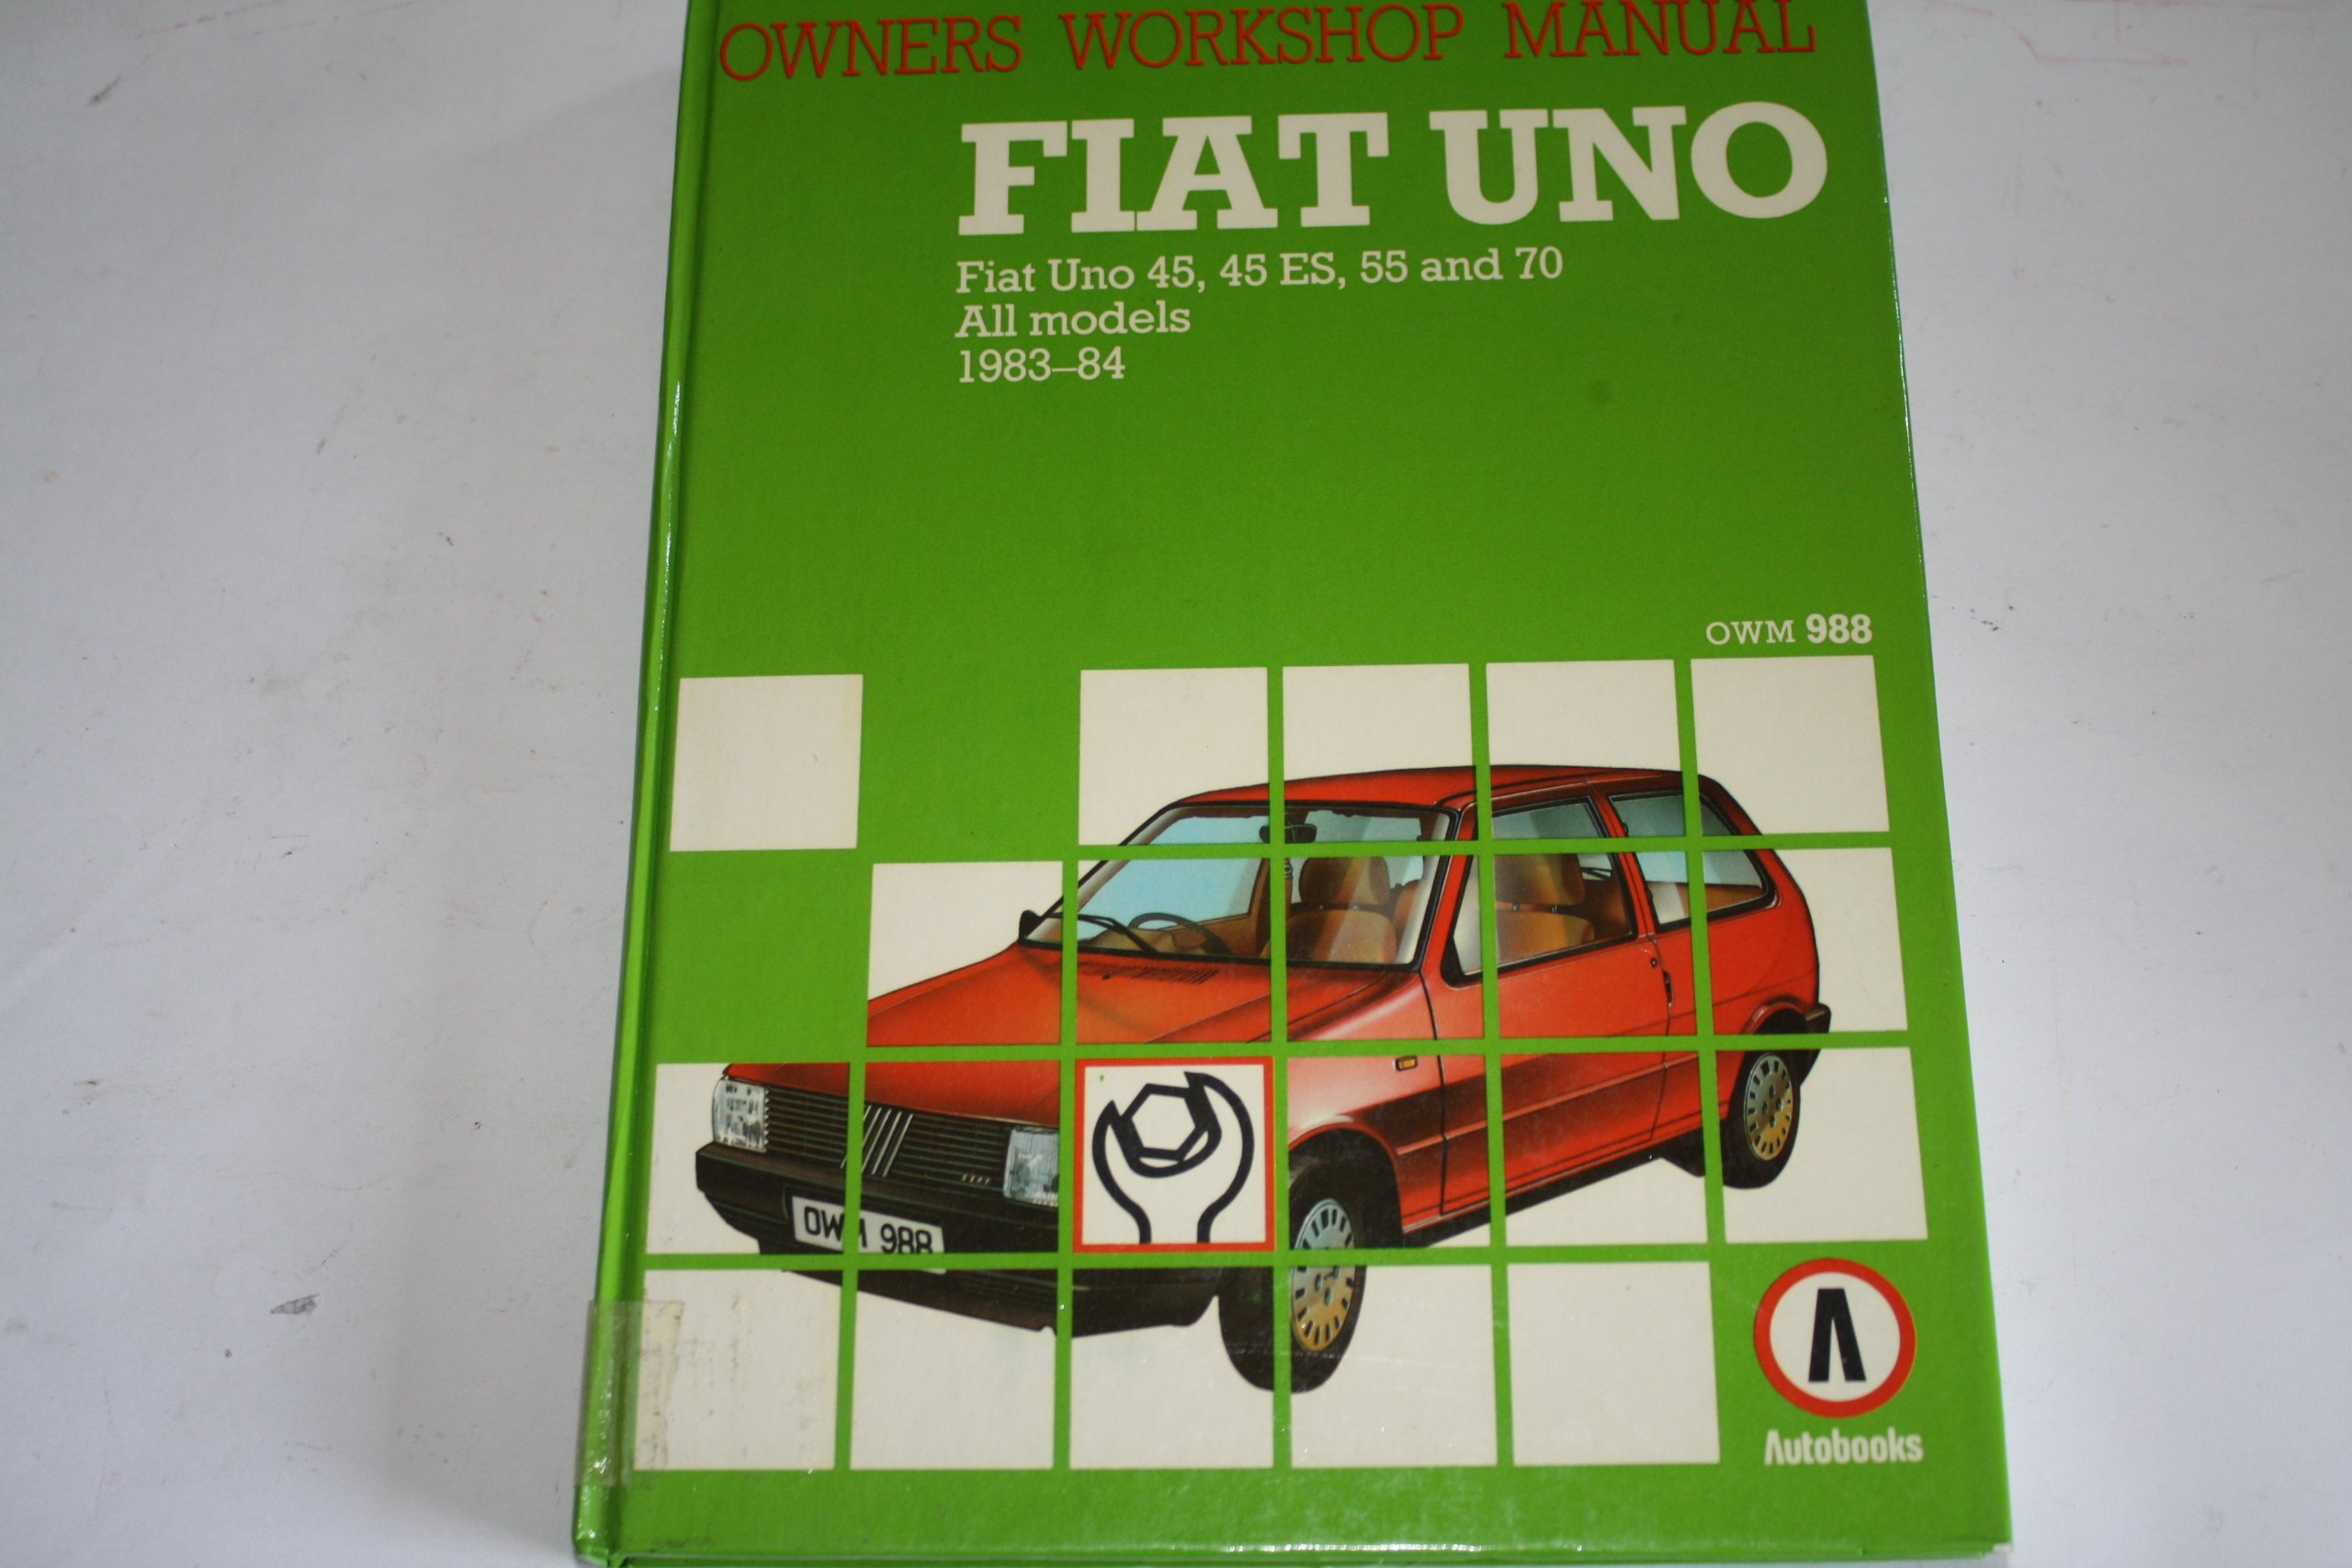 Fiat Uno Fire Workshop Manual 2019 Ebook Library